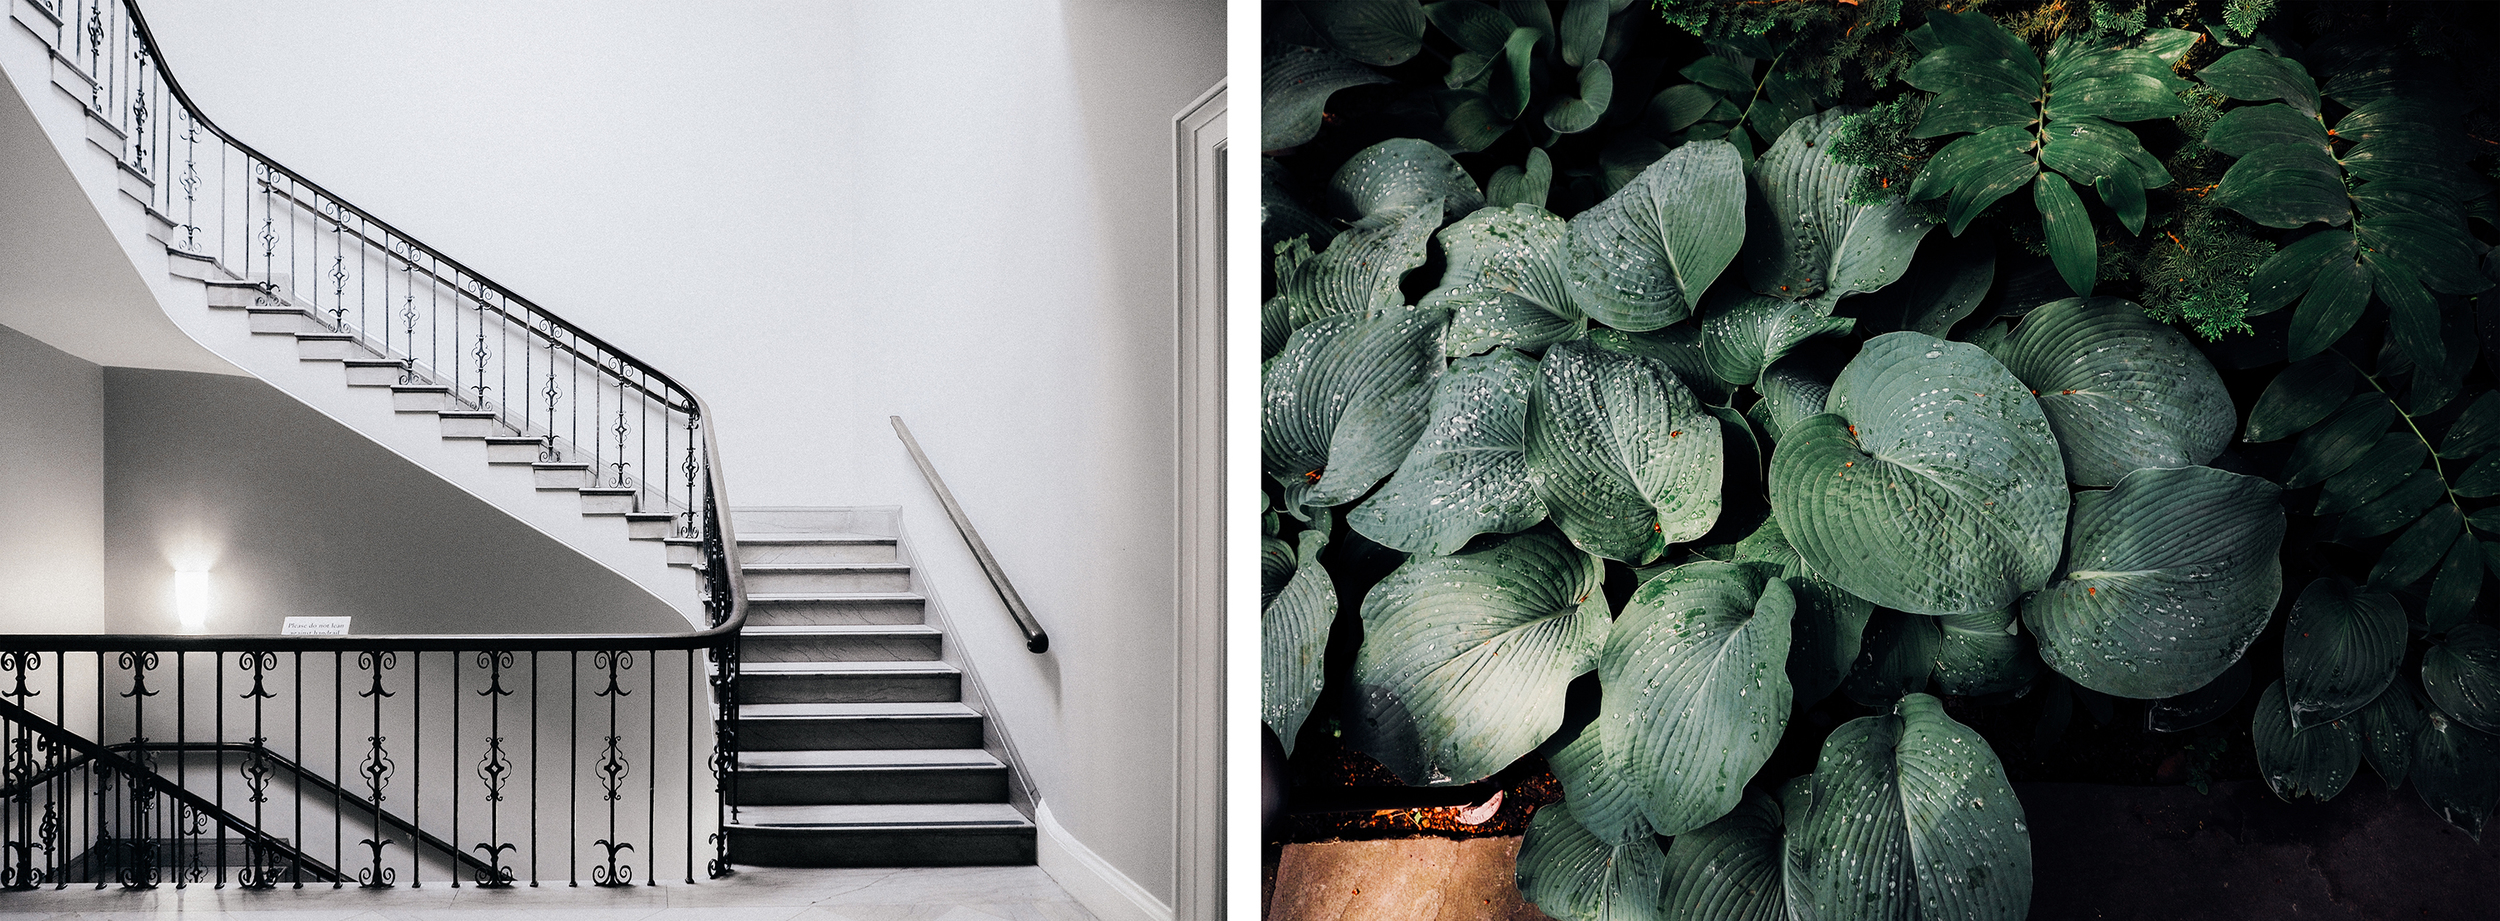 The museum had so many beautiful spaces, including stairways and their garden.